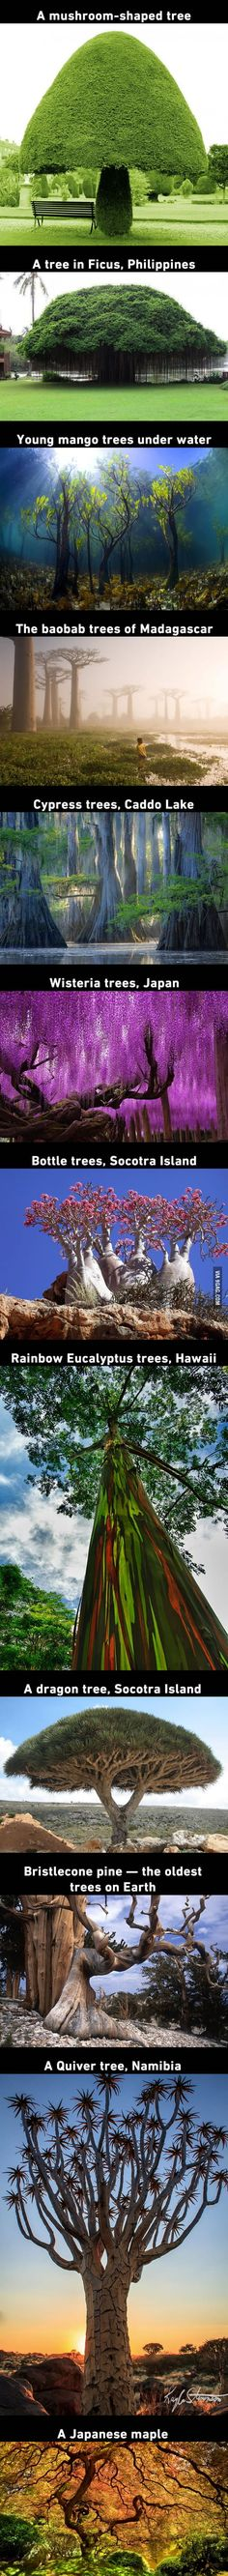 12 Beautiful Trees That You'd Thought They Grow On Pandora From Avatar - Garden Types All Nature, Amazing Nature, Nature Quotes, Nature Tree, Beautiful World, Beautiful Places, Beautiful Beautiful, Avatar, Pandora